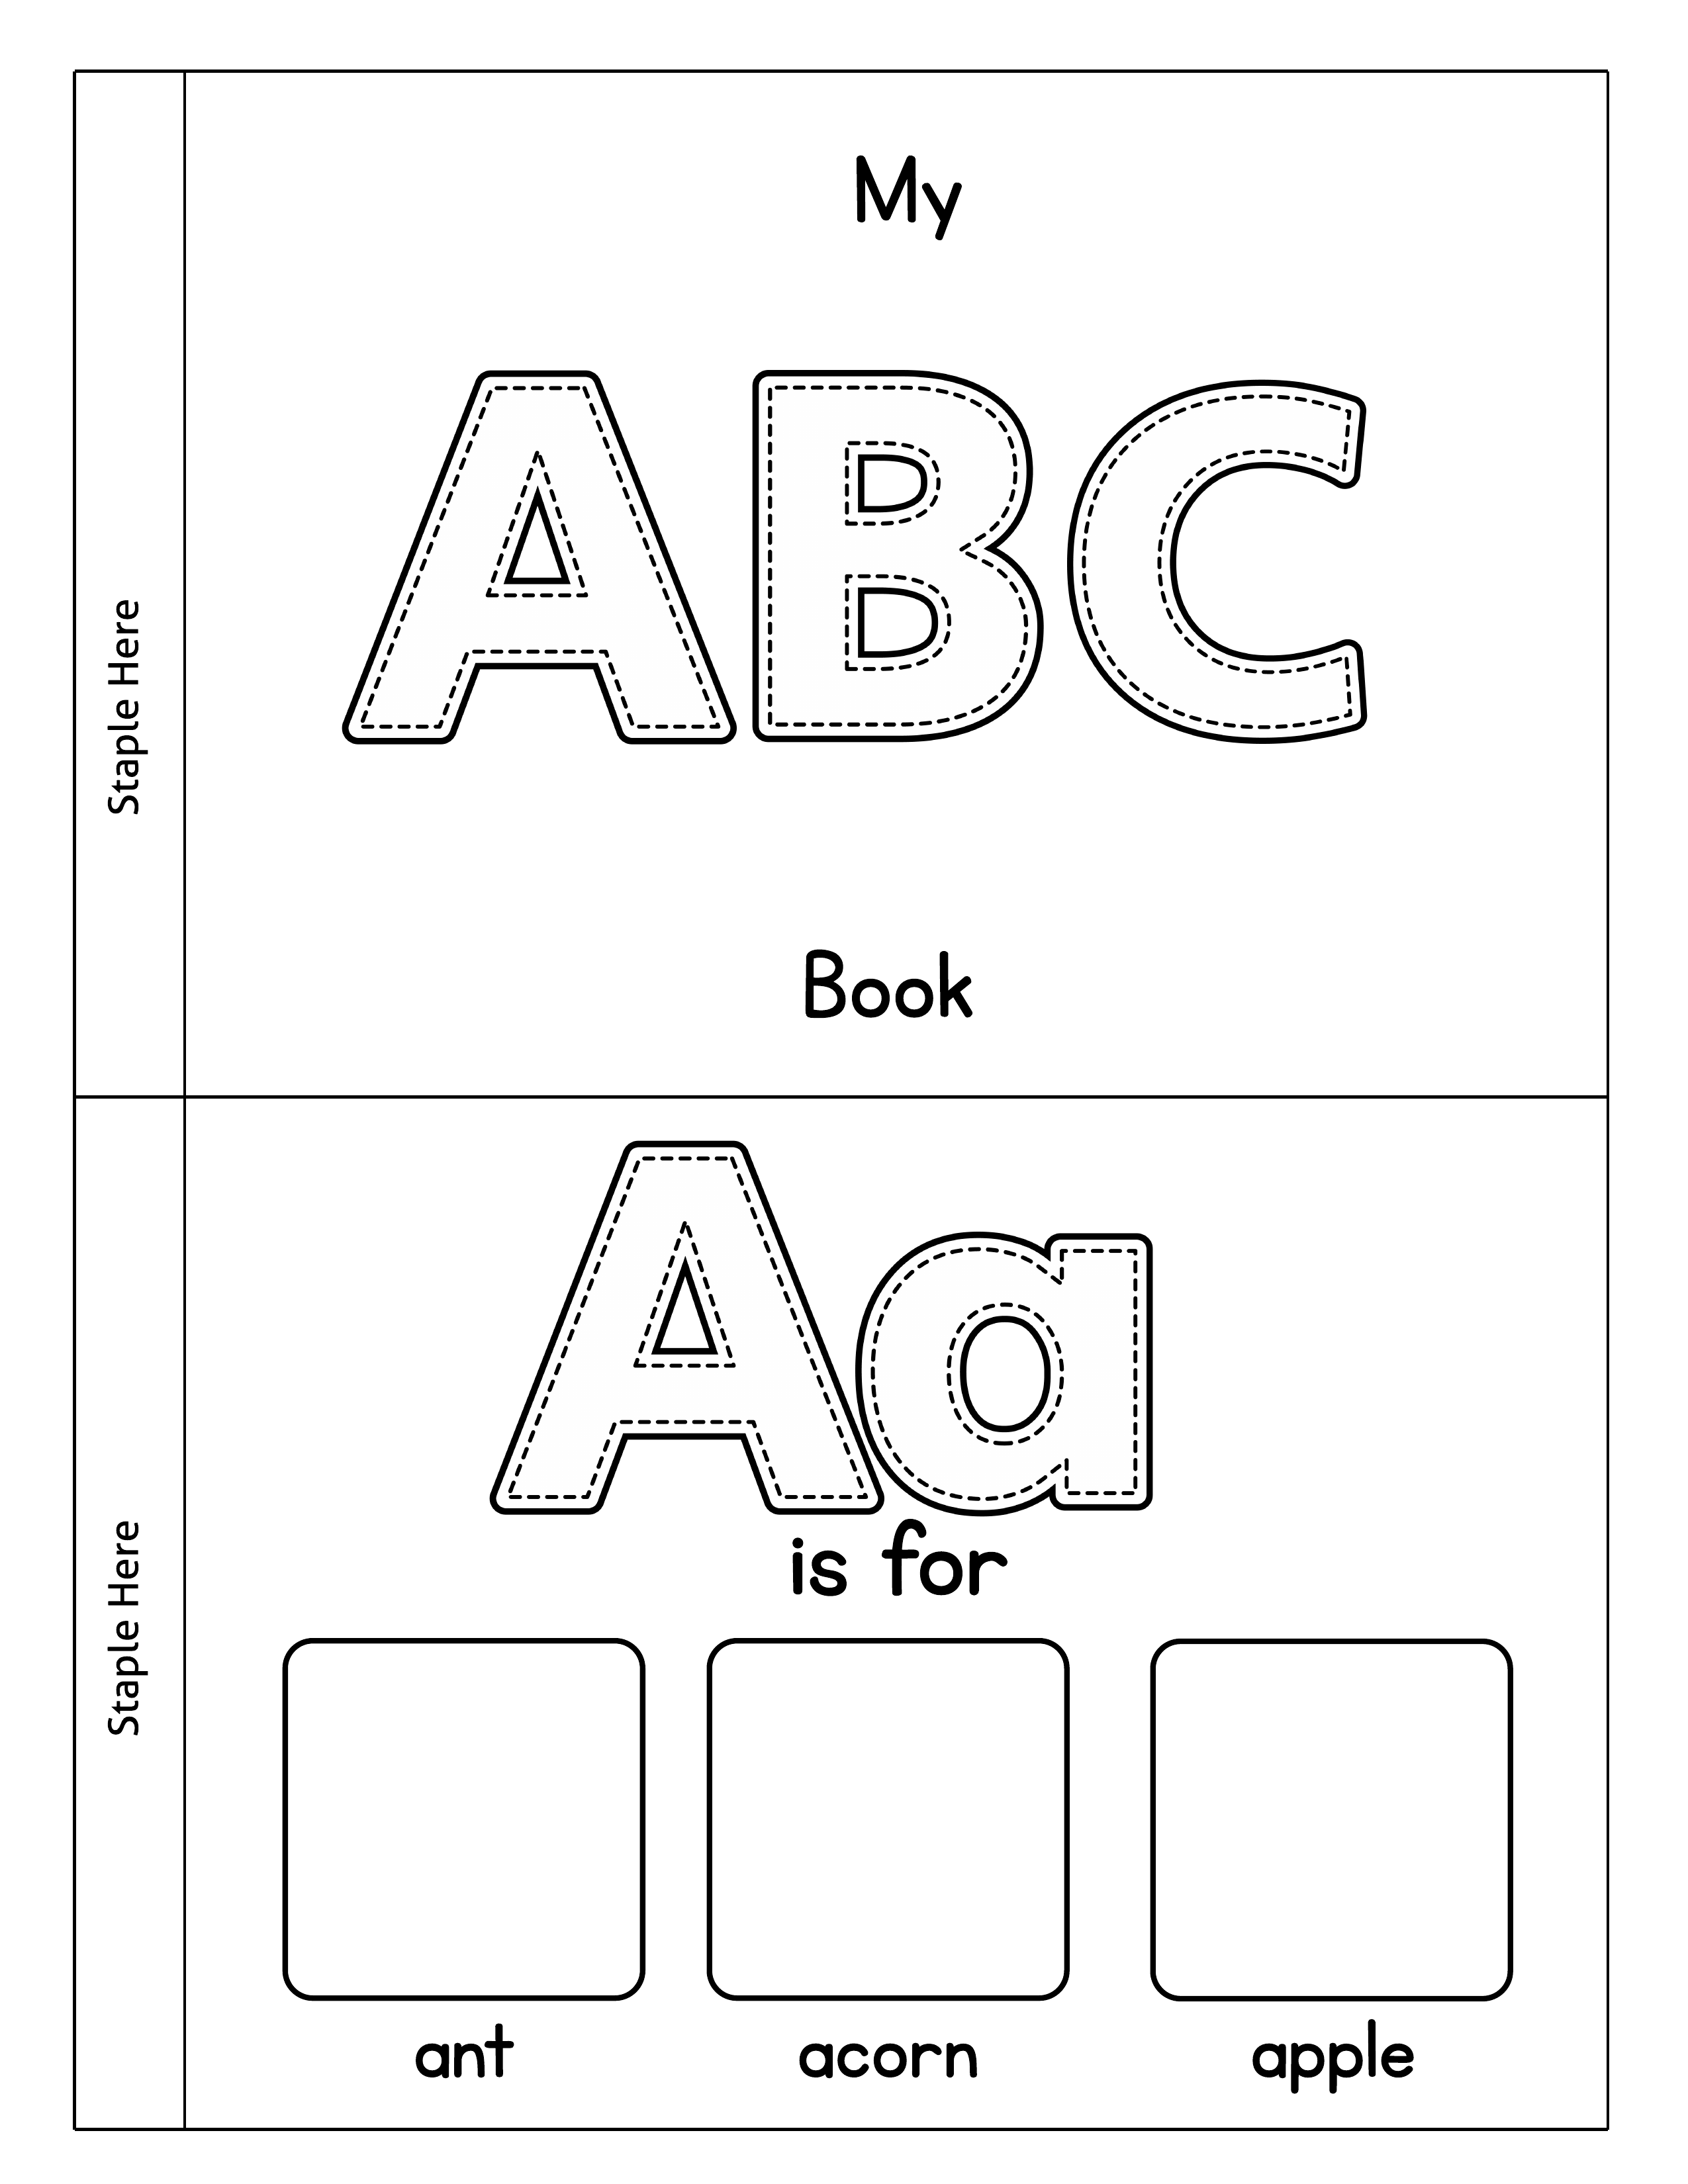 picture about Abc Book Printable named Printable Alphabet Guide - Minimize, Shade Paste